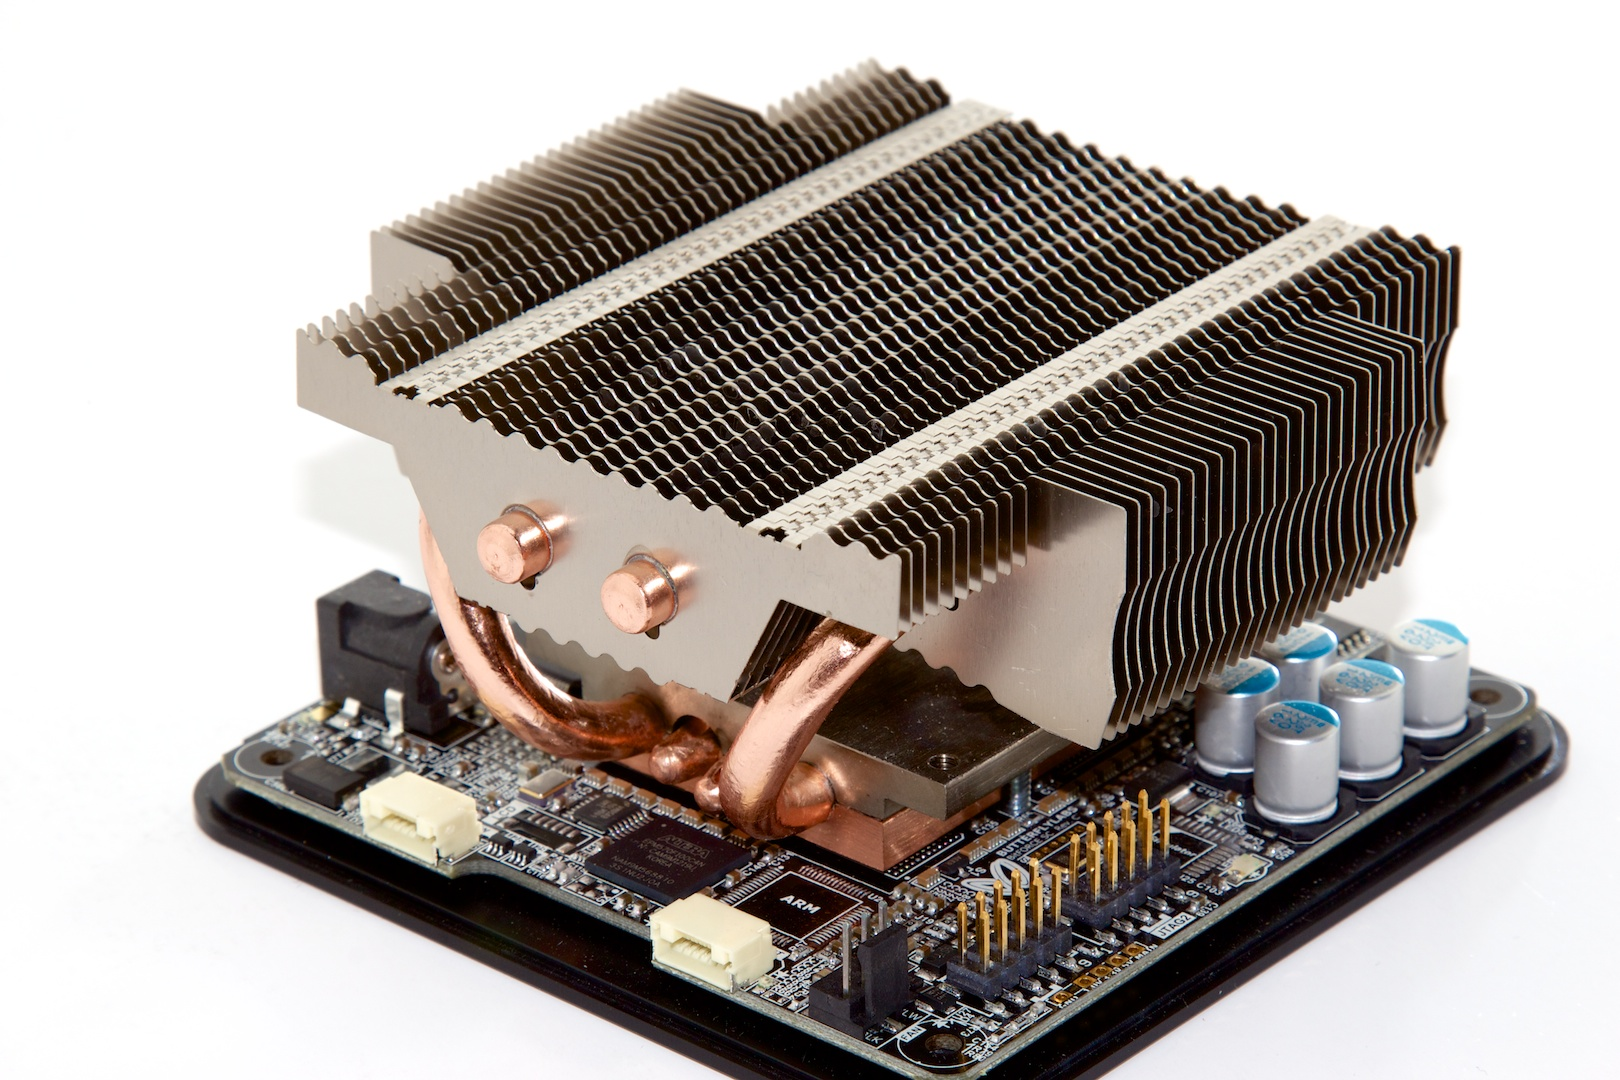 Close-up of the ASIC's heat sink and some of the motherboard components.